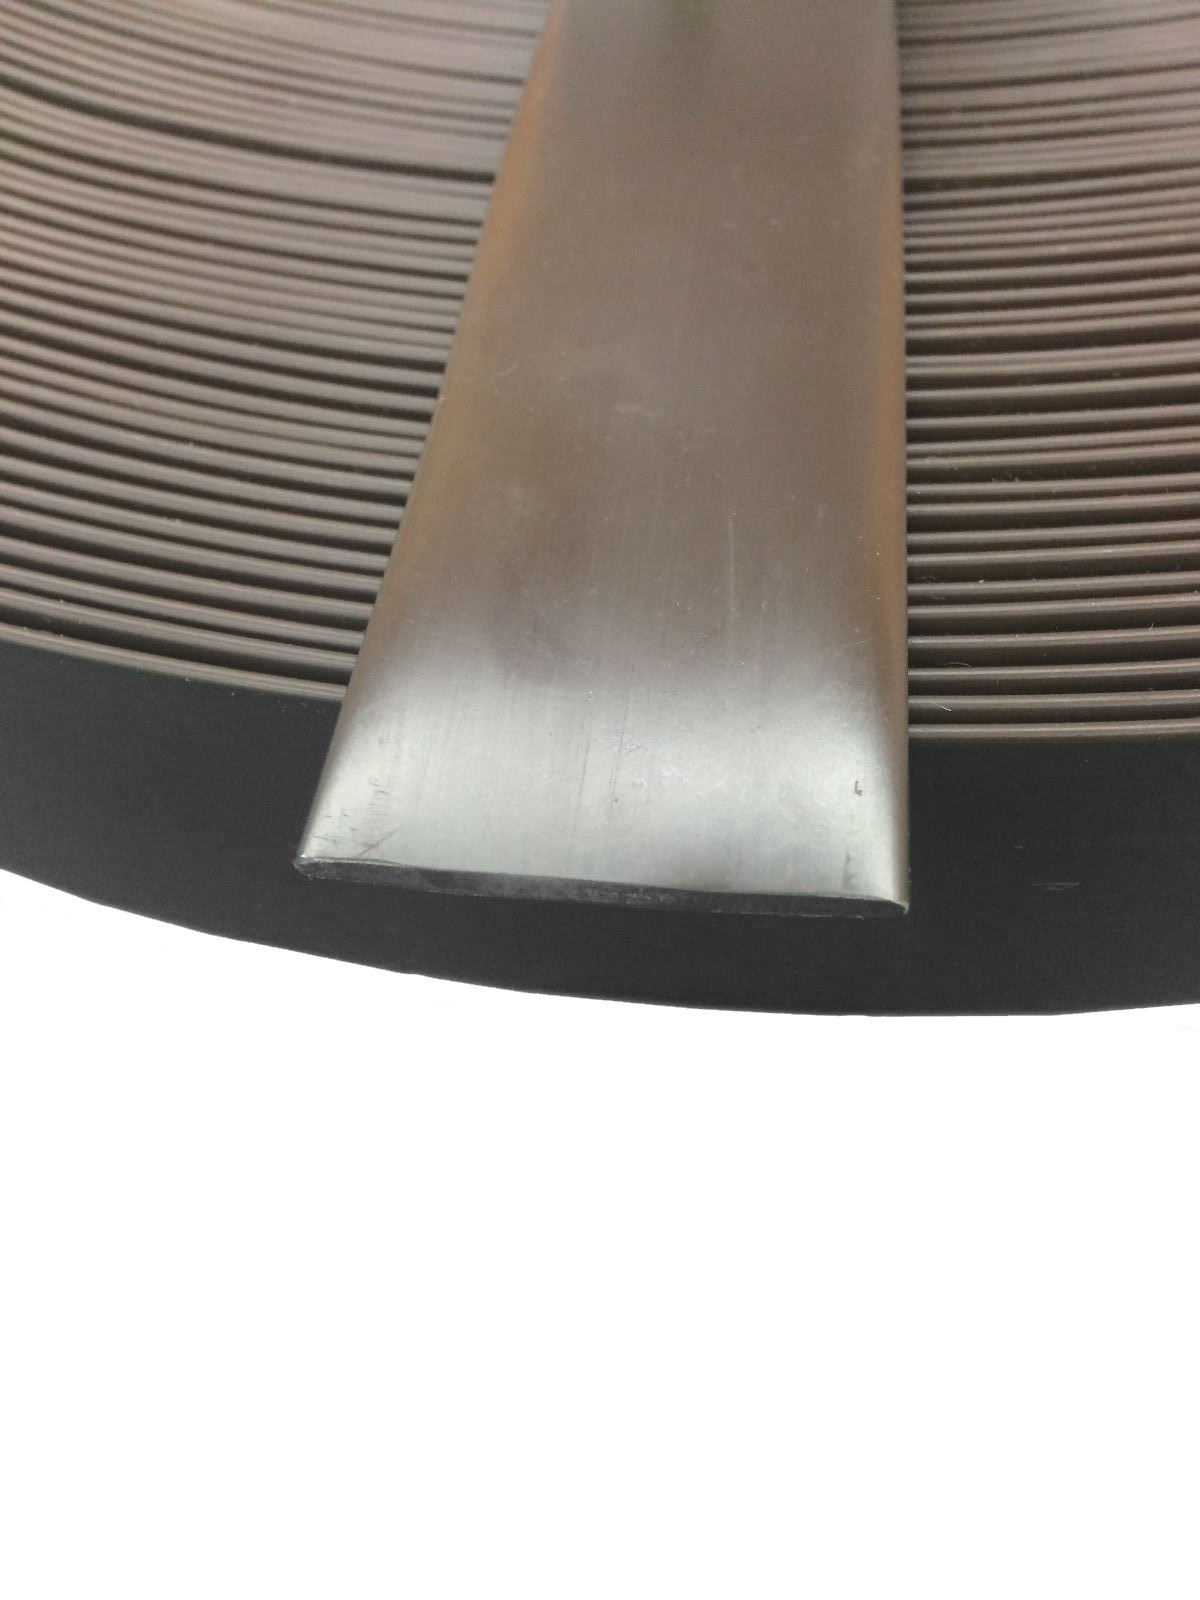 10 Ft x 1.5'' Vinyl Brown Strap Strapping for Chairs Outdoor Patio Furniture Replacement Pool Lawn Garden Repair Super-Deals-Shop